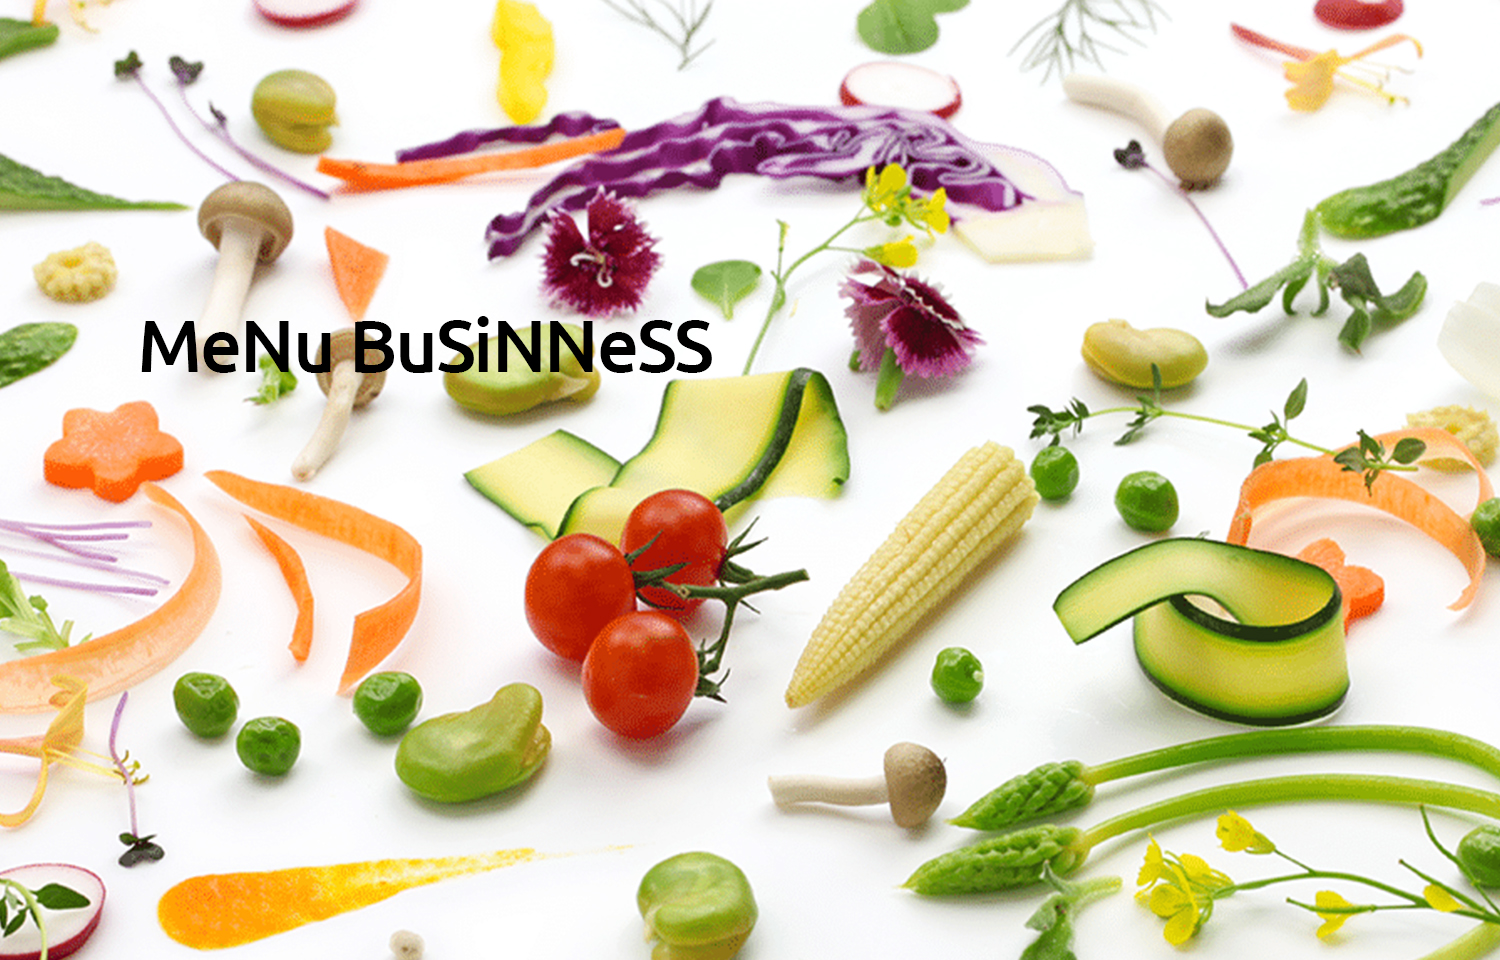 menu-businness